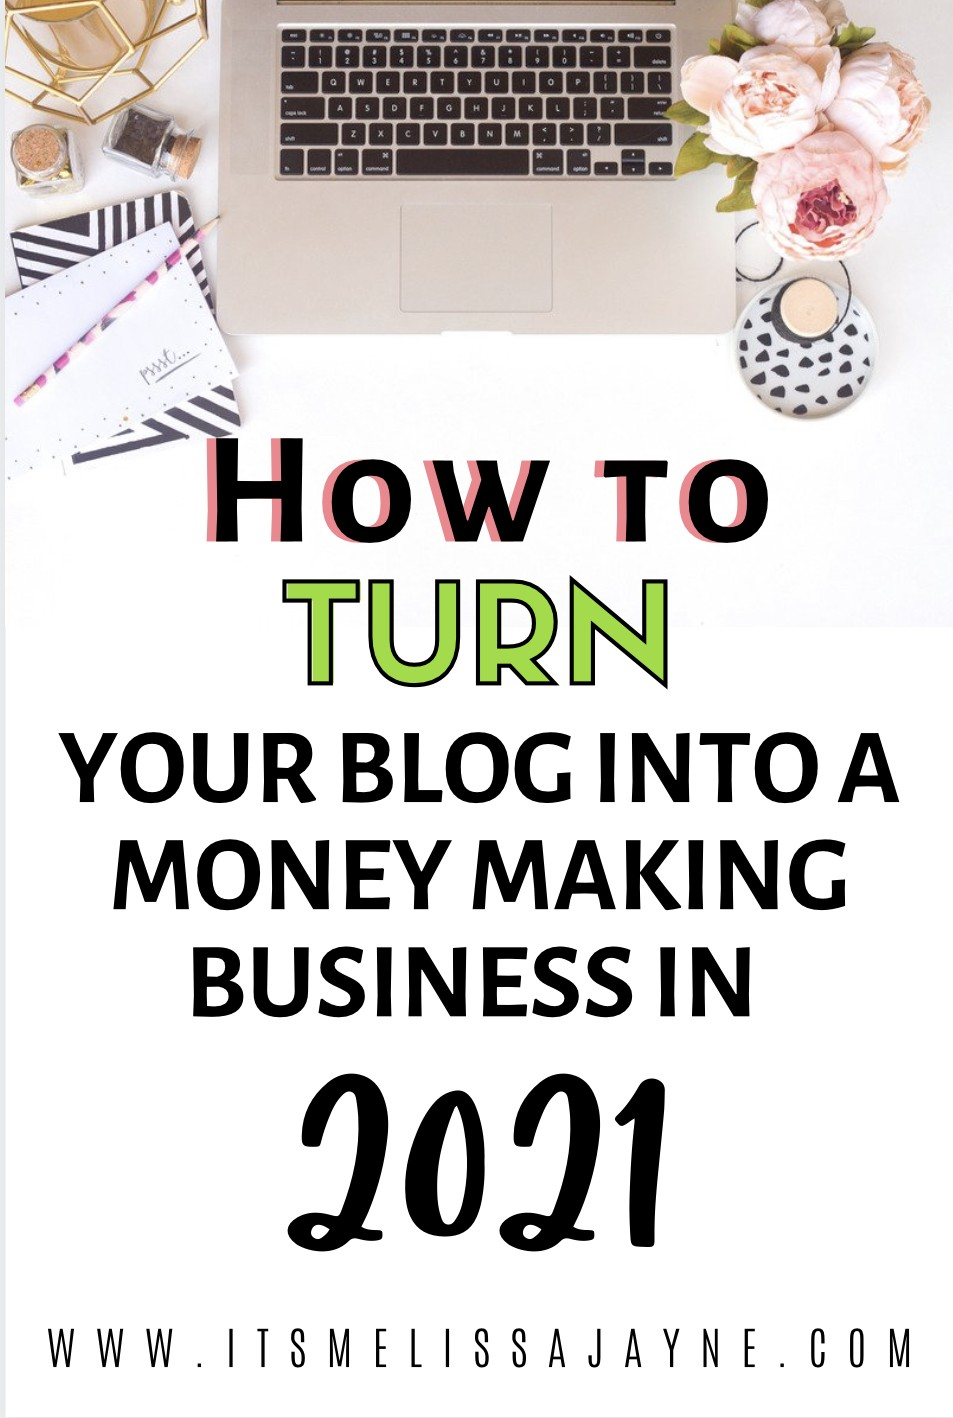 How To Turn Your Blog Into A Money Making Business In 2021